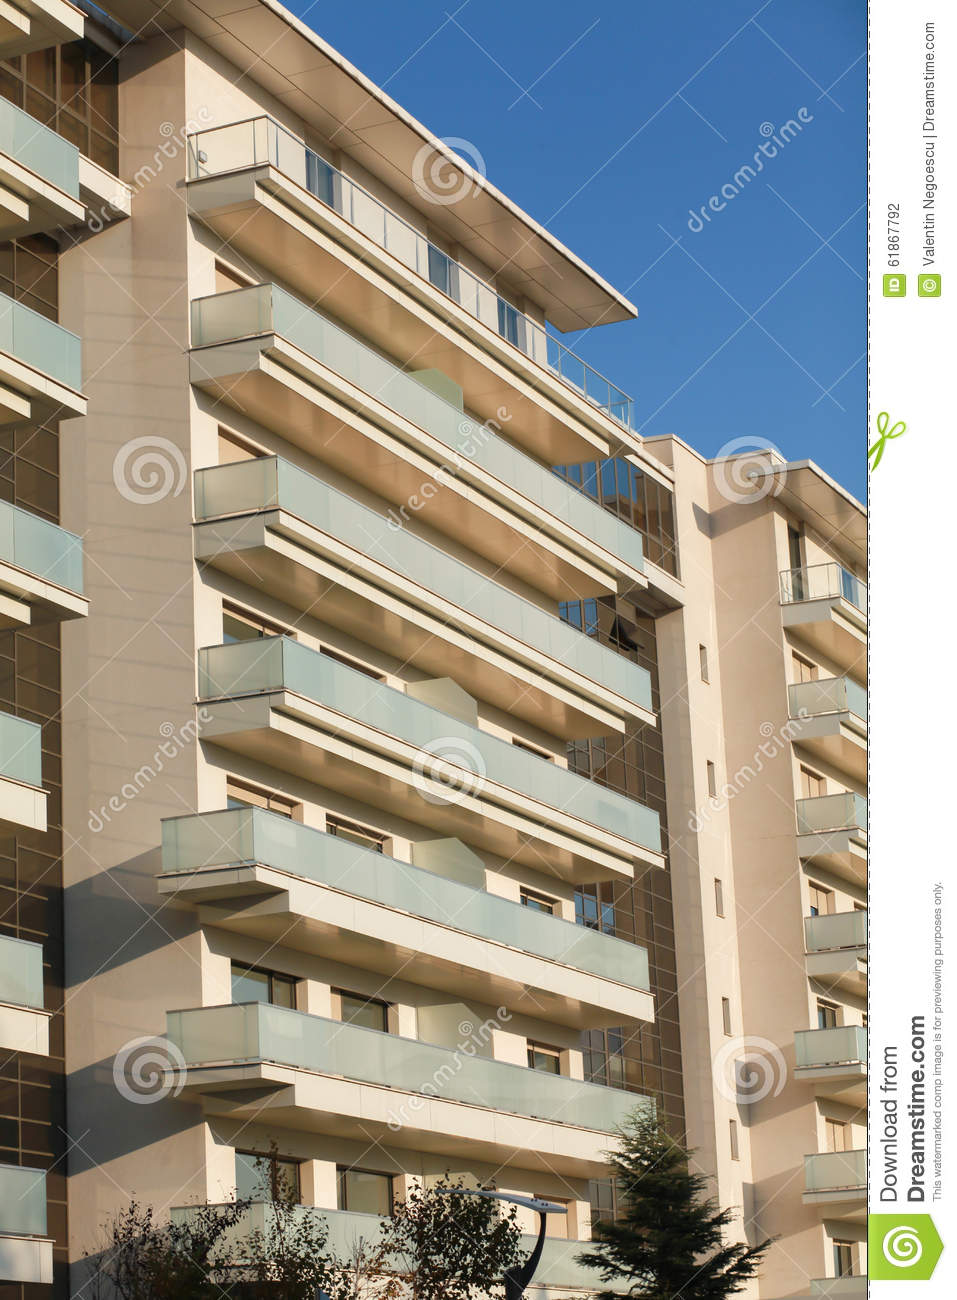 Open balconies modern apartment building stock photo for Balcony apartments